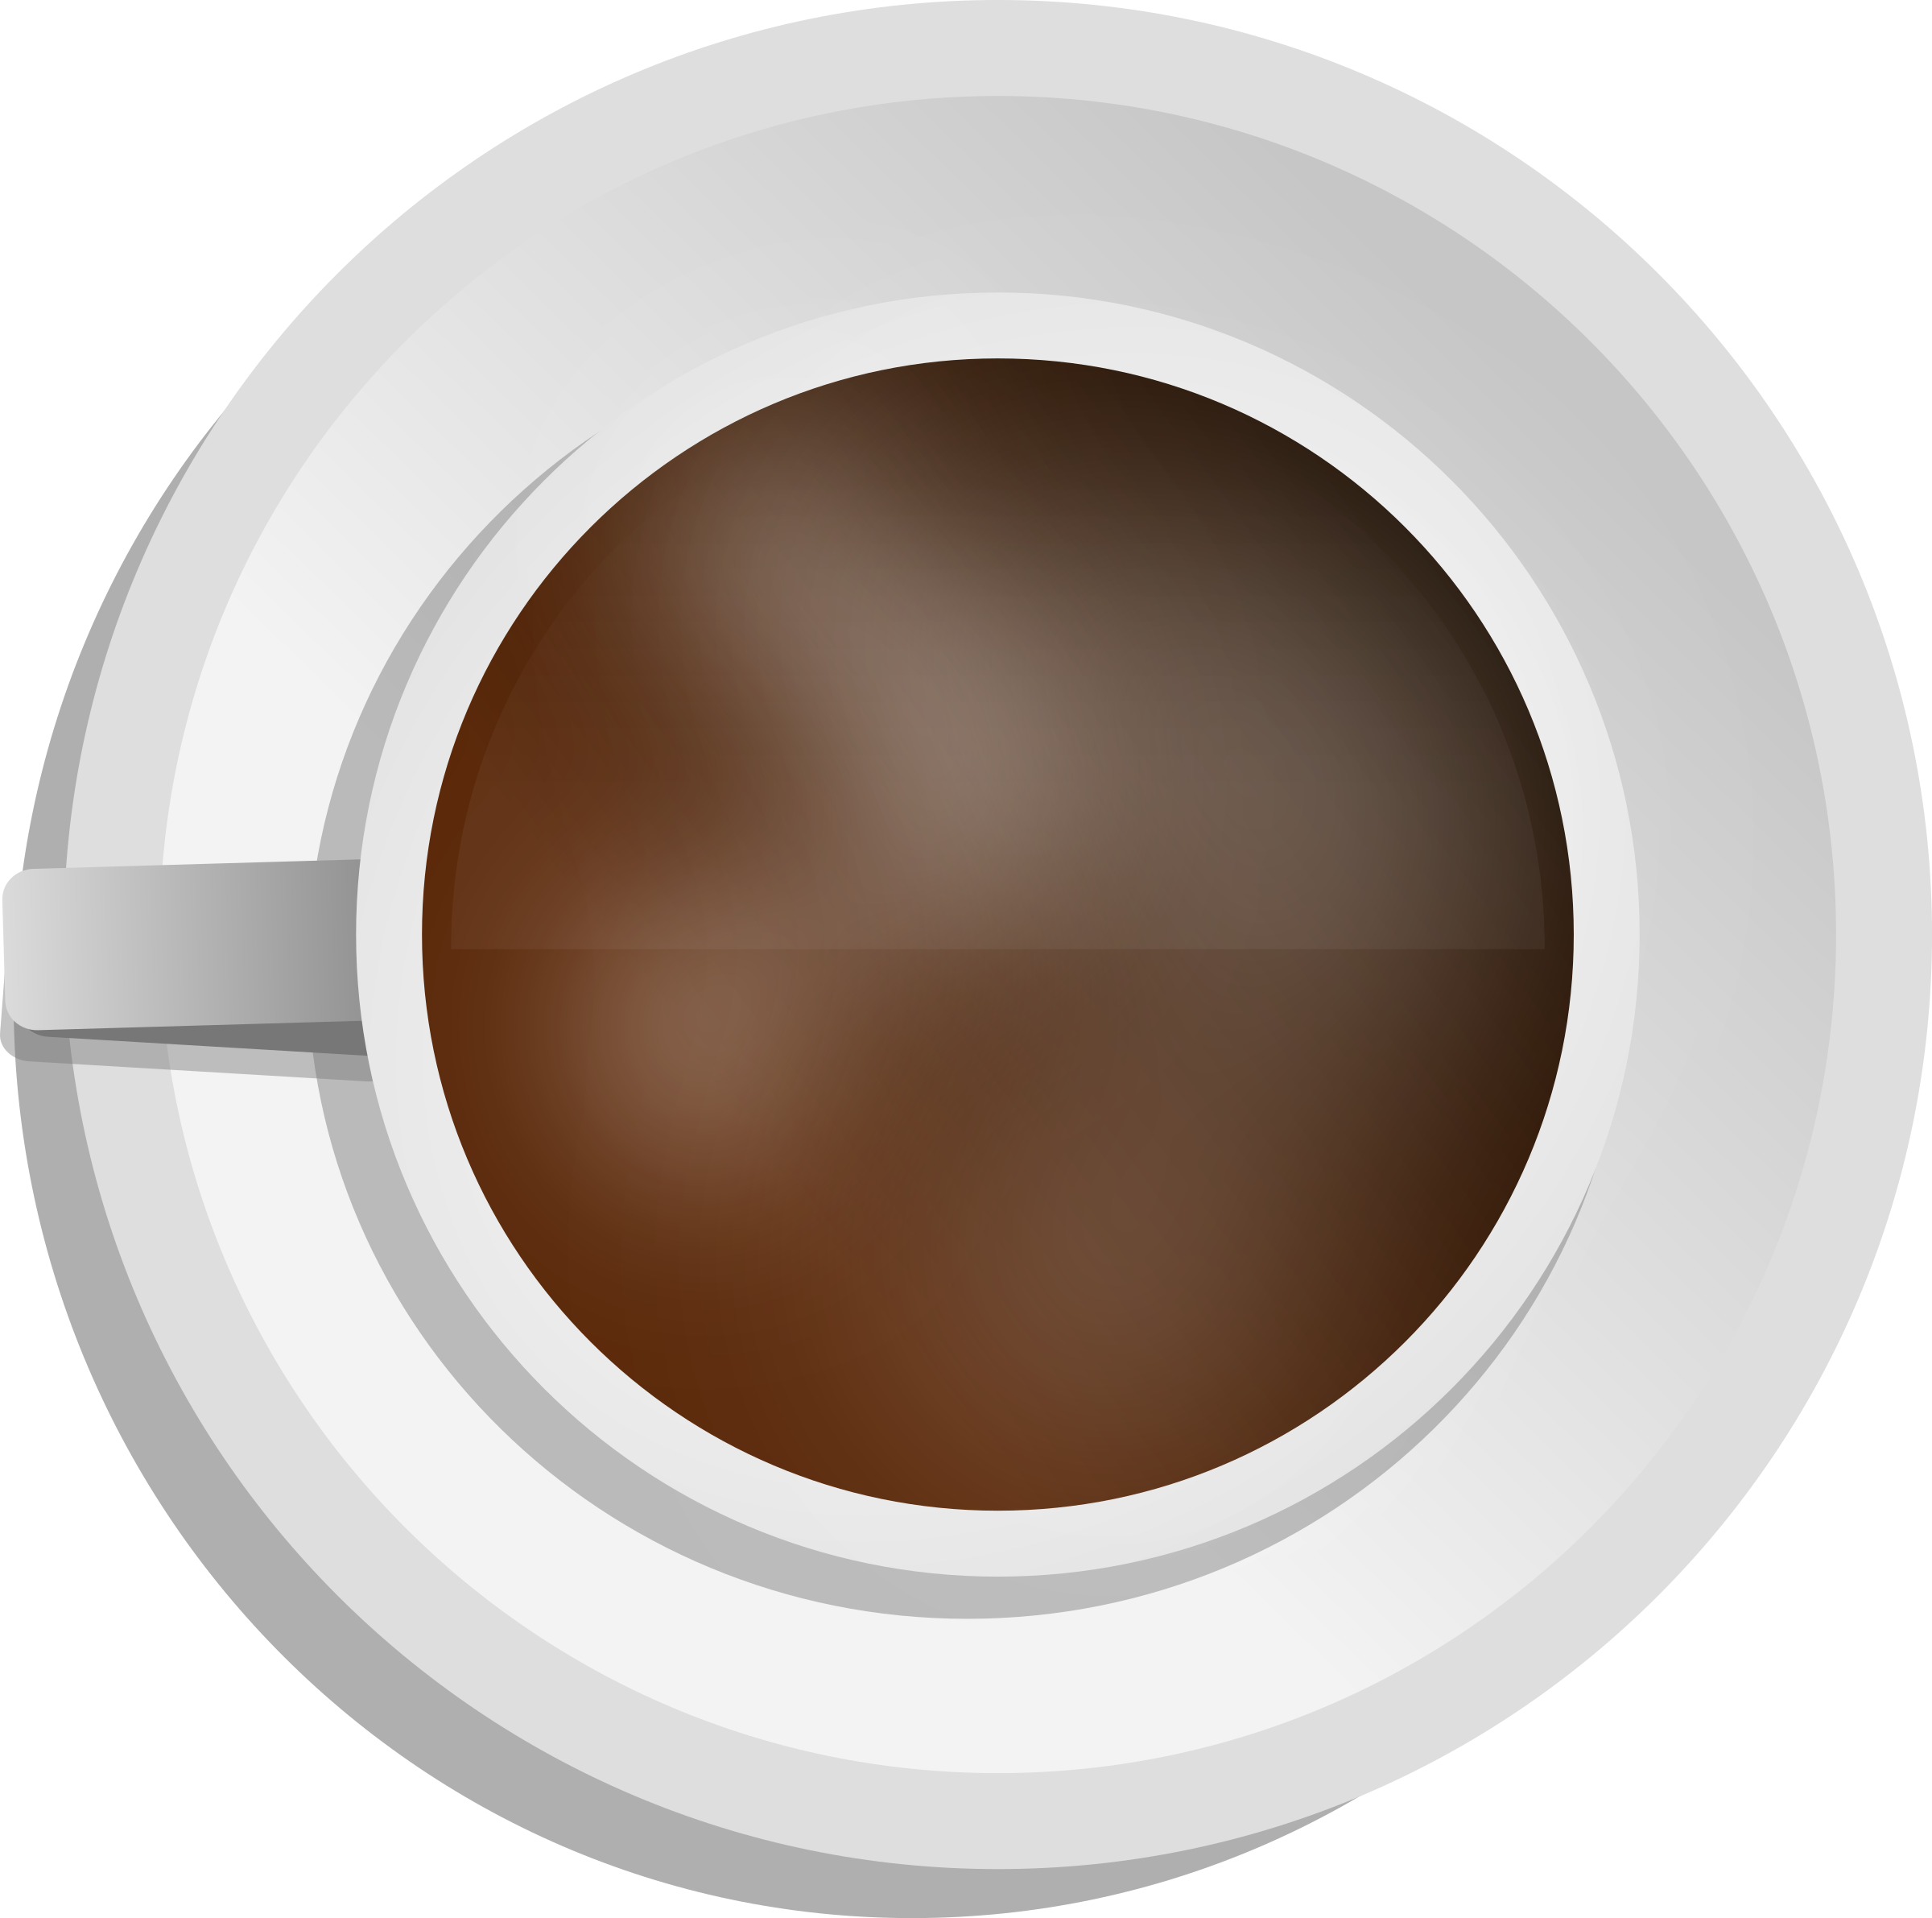 Human clipart top view. Brown eyes realistic coffee